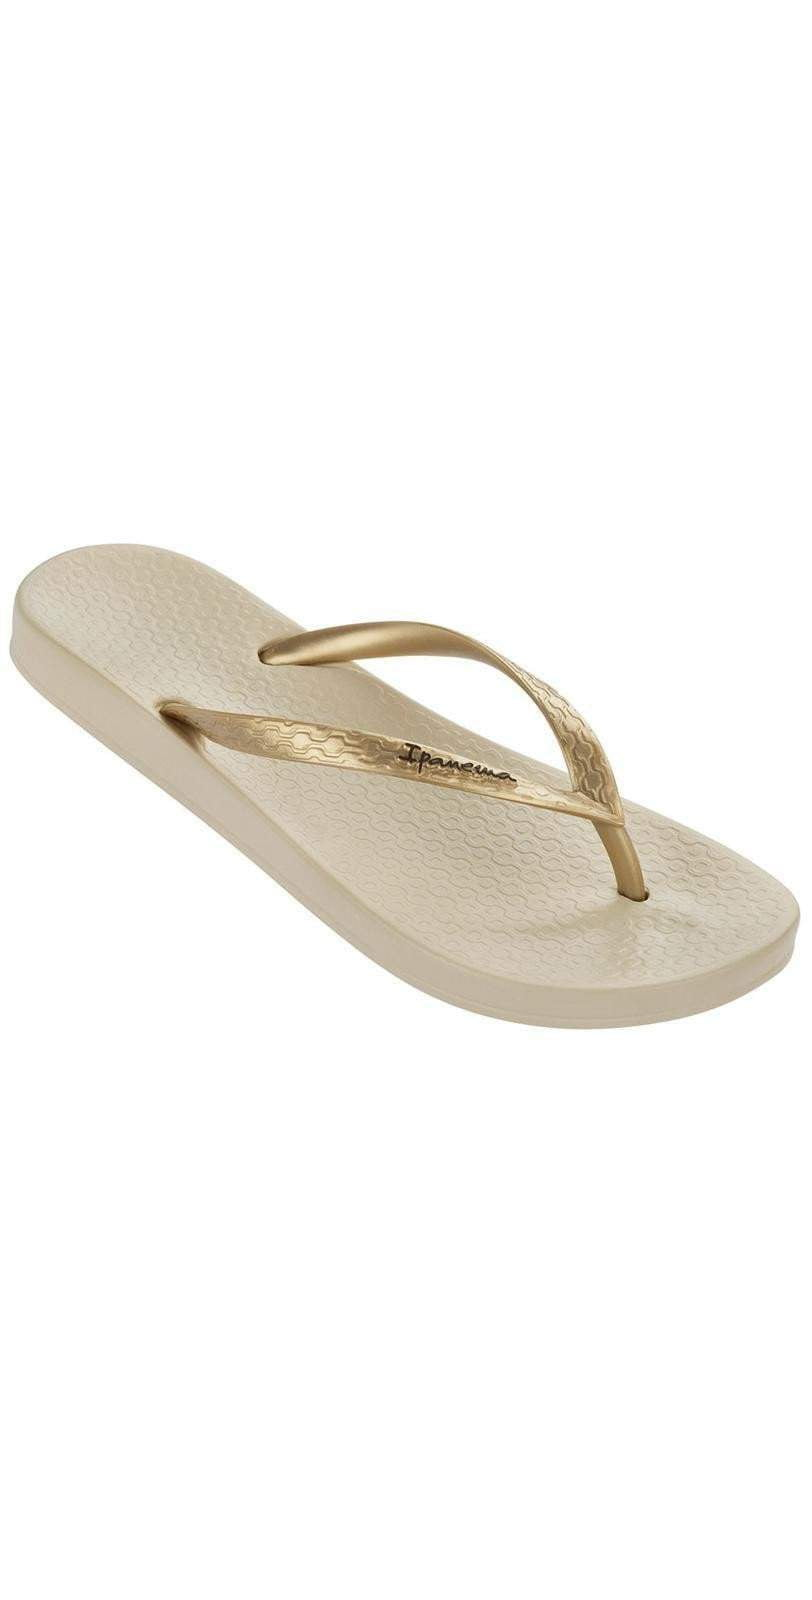 26fc37591a4 Ipanema Womens Ana Tan Flip Flop Beige gold 9 M US. About this product. 5  watching. Picture 1 of 2  Picture 2 of 2